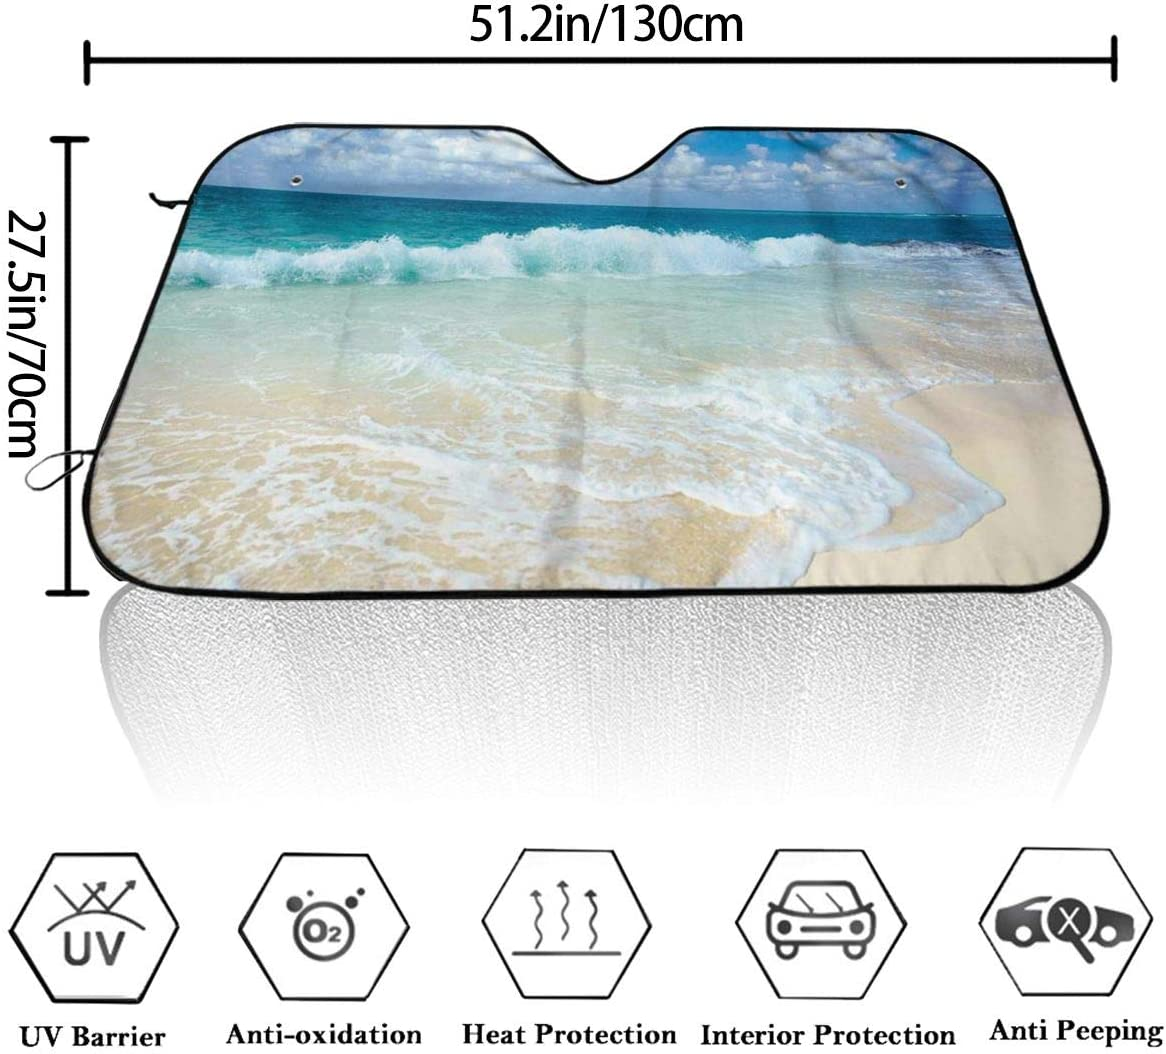 For Car SUV Truck Universal Fit 51 X 27.5 Inches Beach With Foamy Waves On Empty Sea Shore Holiday Theme Serene Coastal Windshield Sun Shade Cover Visor Protector Sunshades Covers Awning Shades